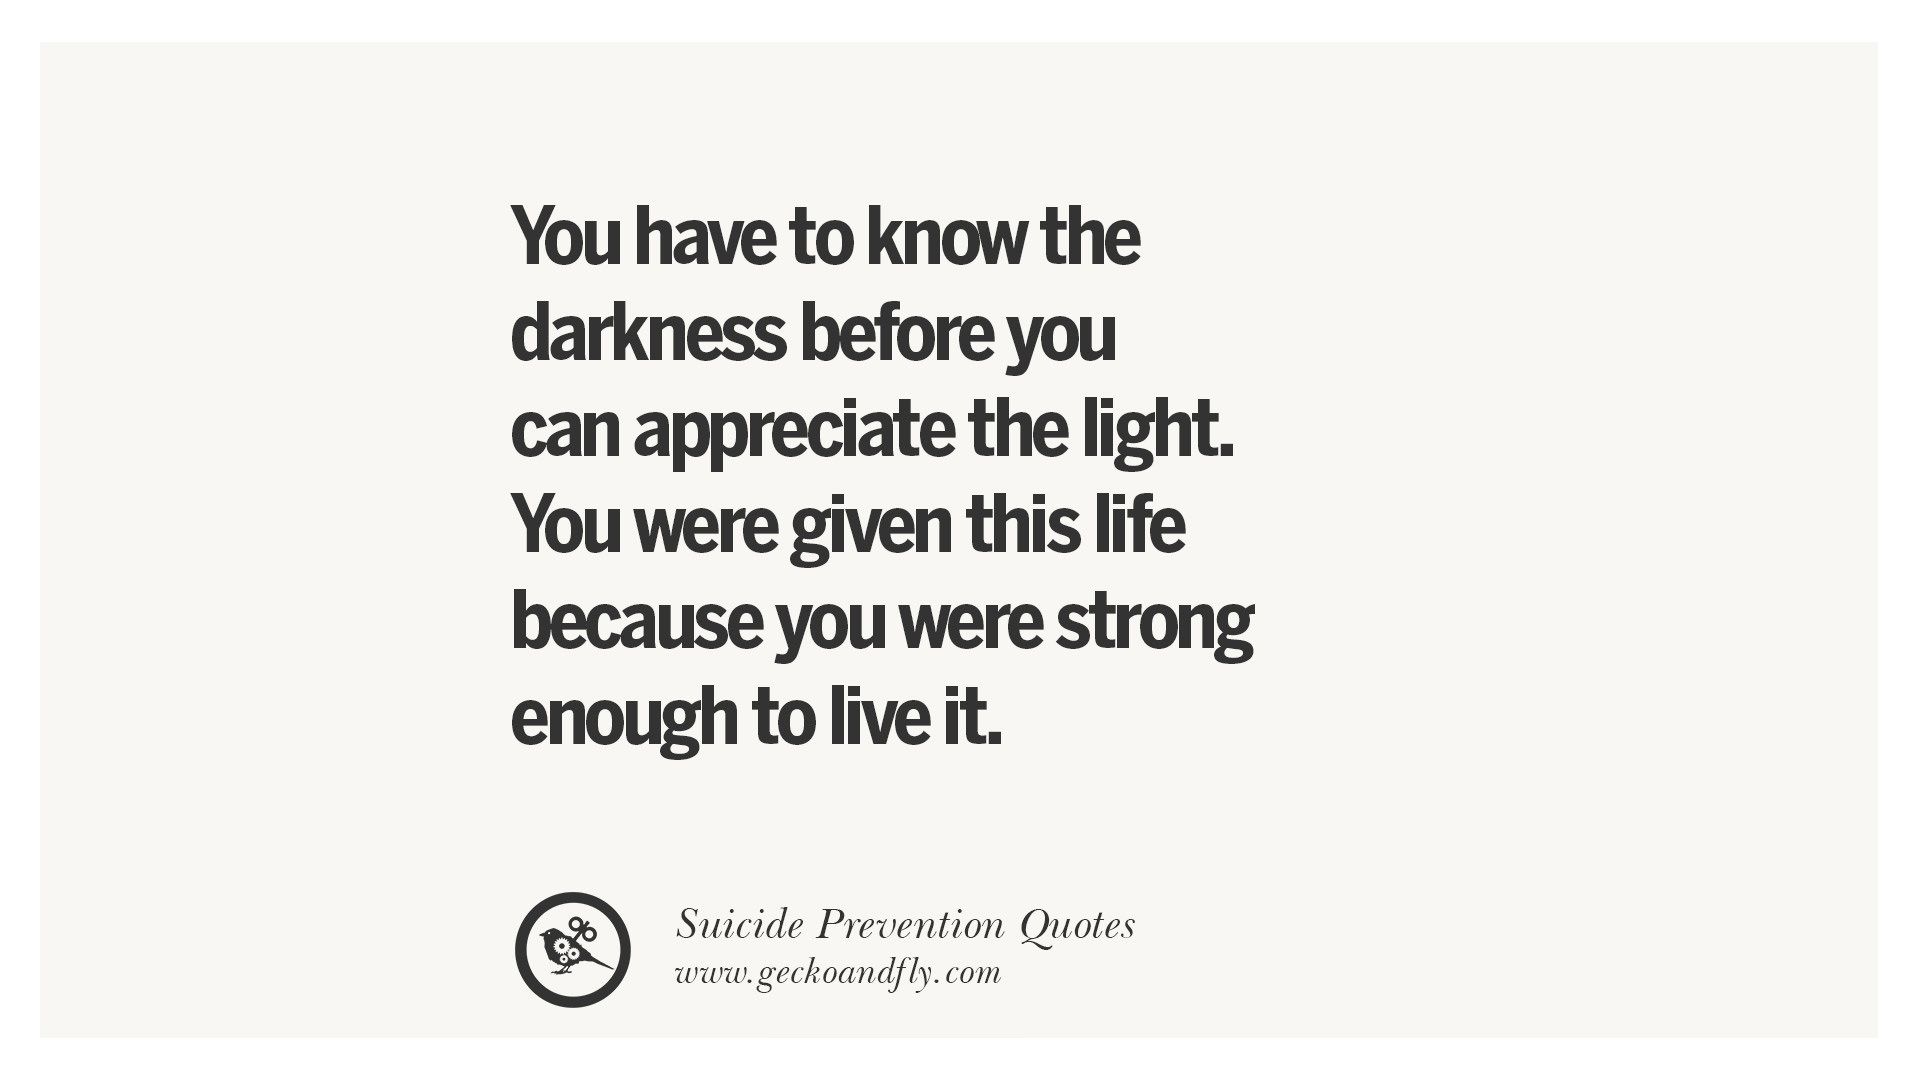 Dark Suicide Quotes: 30 Helpful Suicidal Prevention, Ideation, Thoughts And Quotes